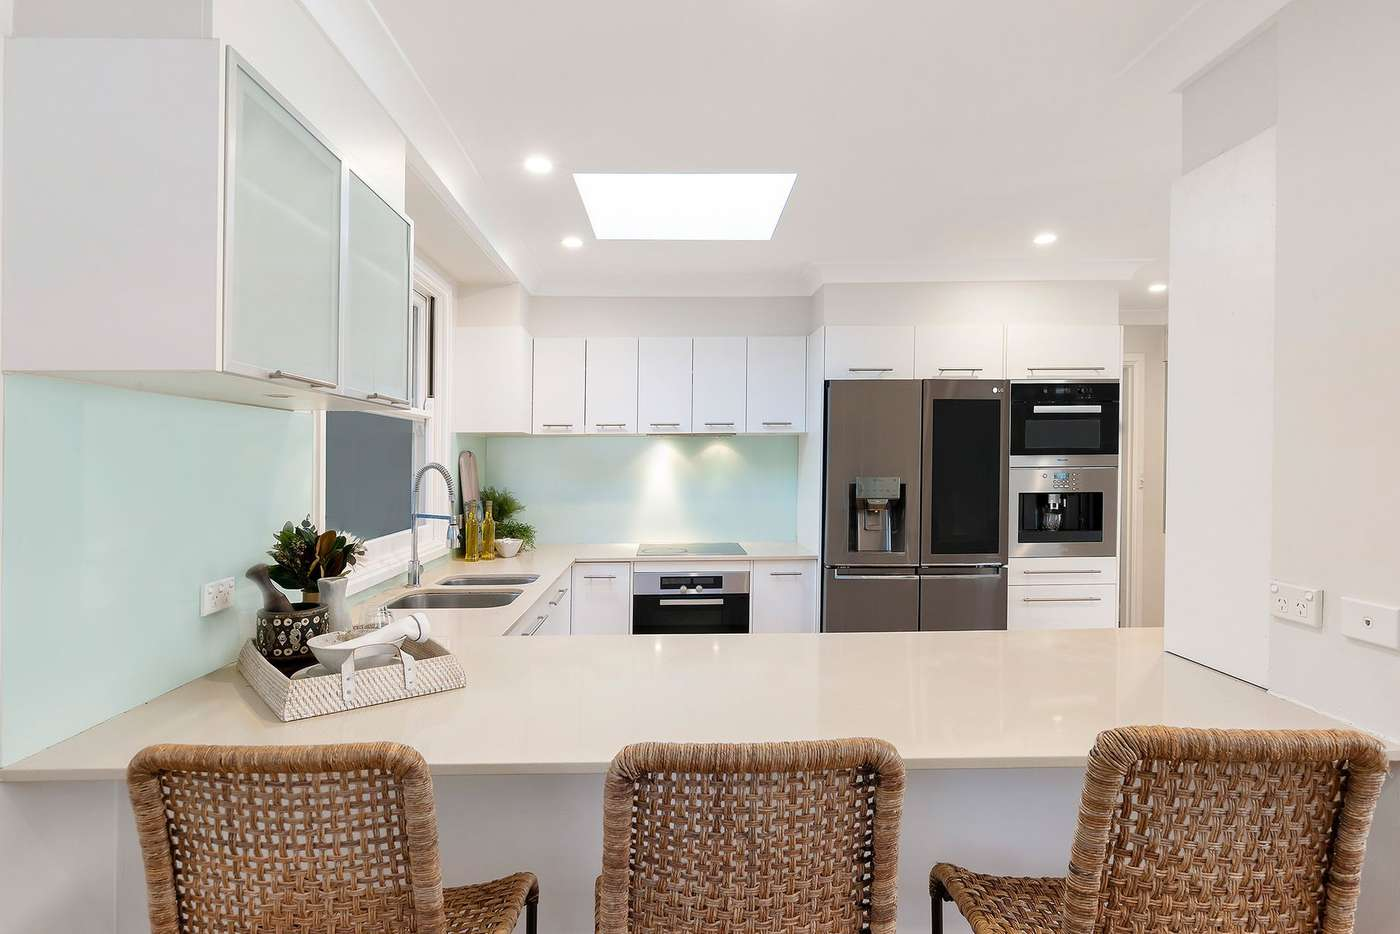 Fifth view of Homely house listing, 27 Selwyn Street, Pymble NSW 2073